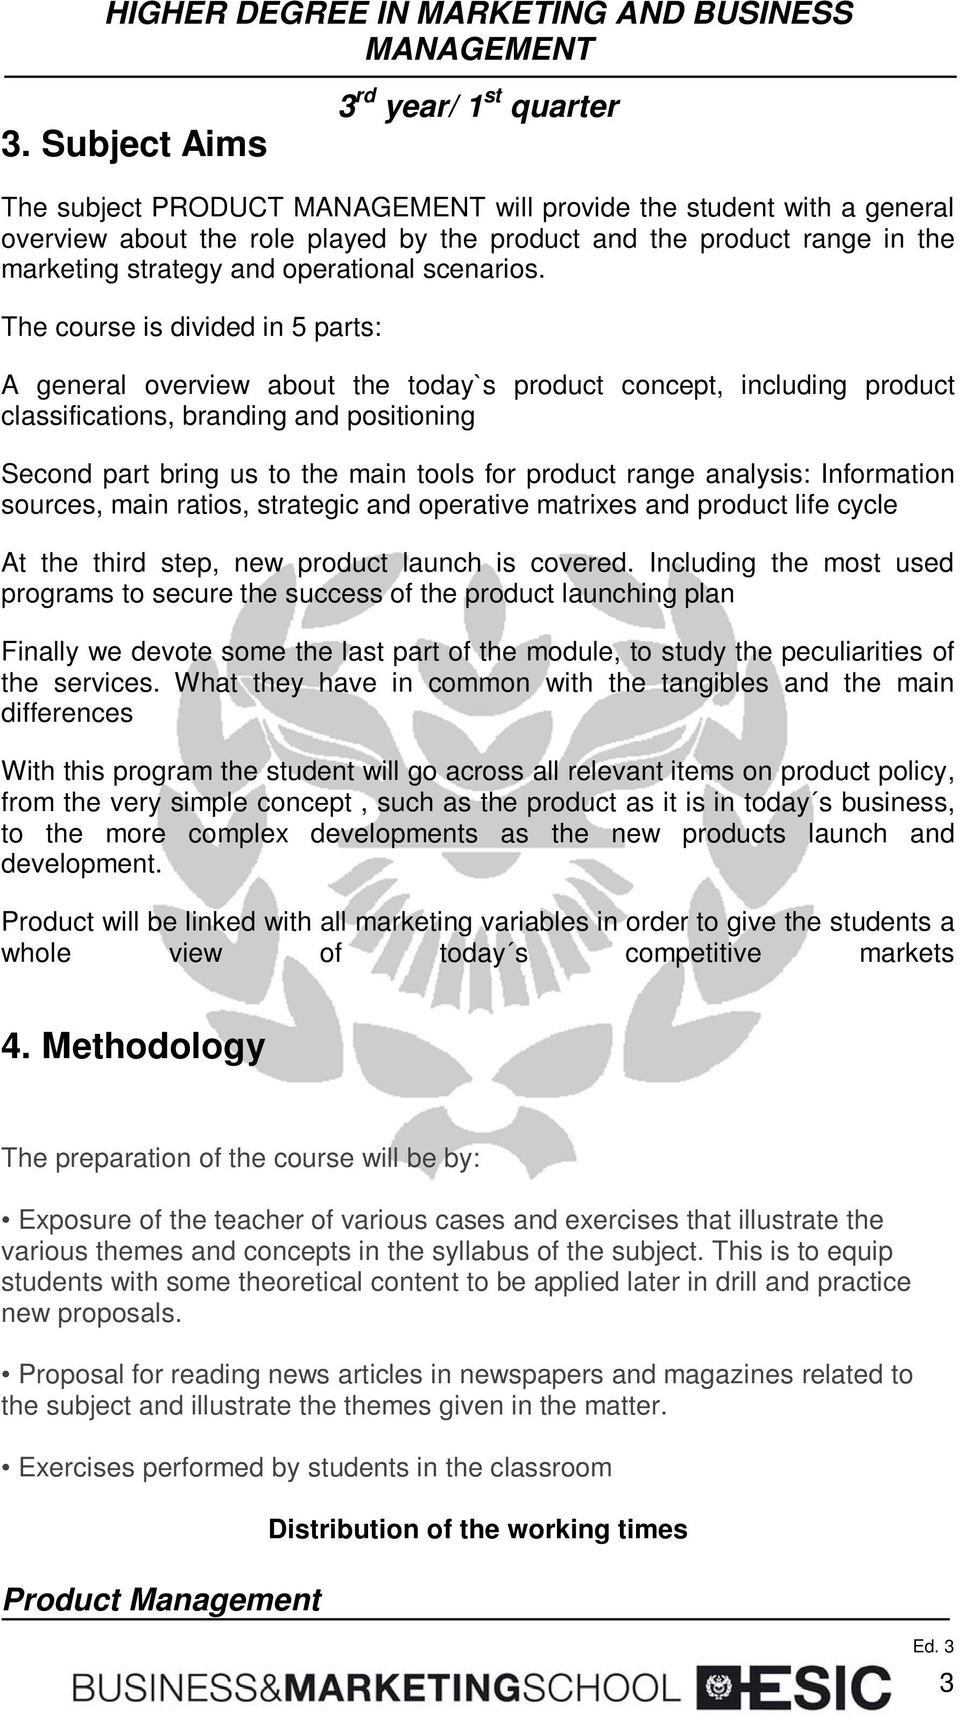 range analysis: Information sources, main ratios, strategic and operative matrixes and product life cycle At the third step, new product launch is covered.